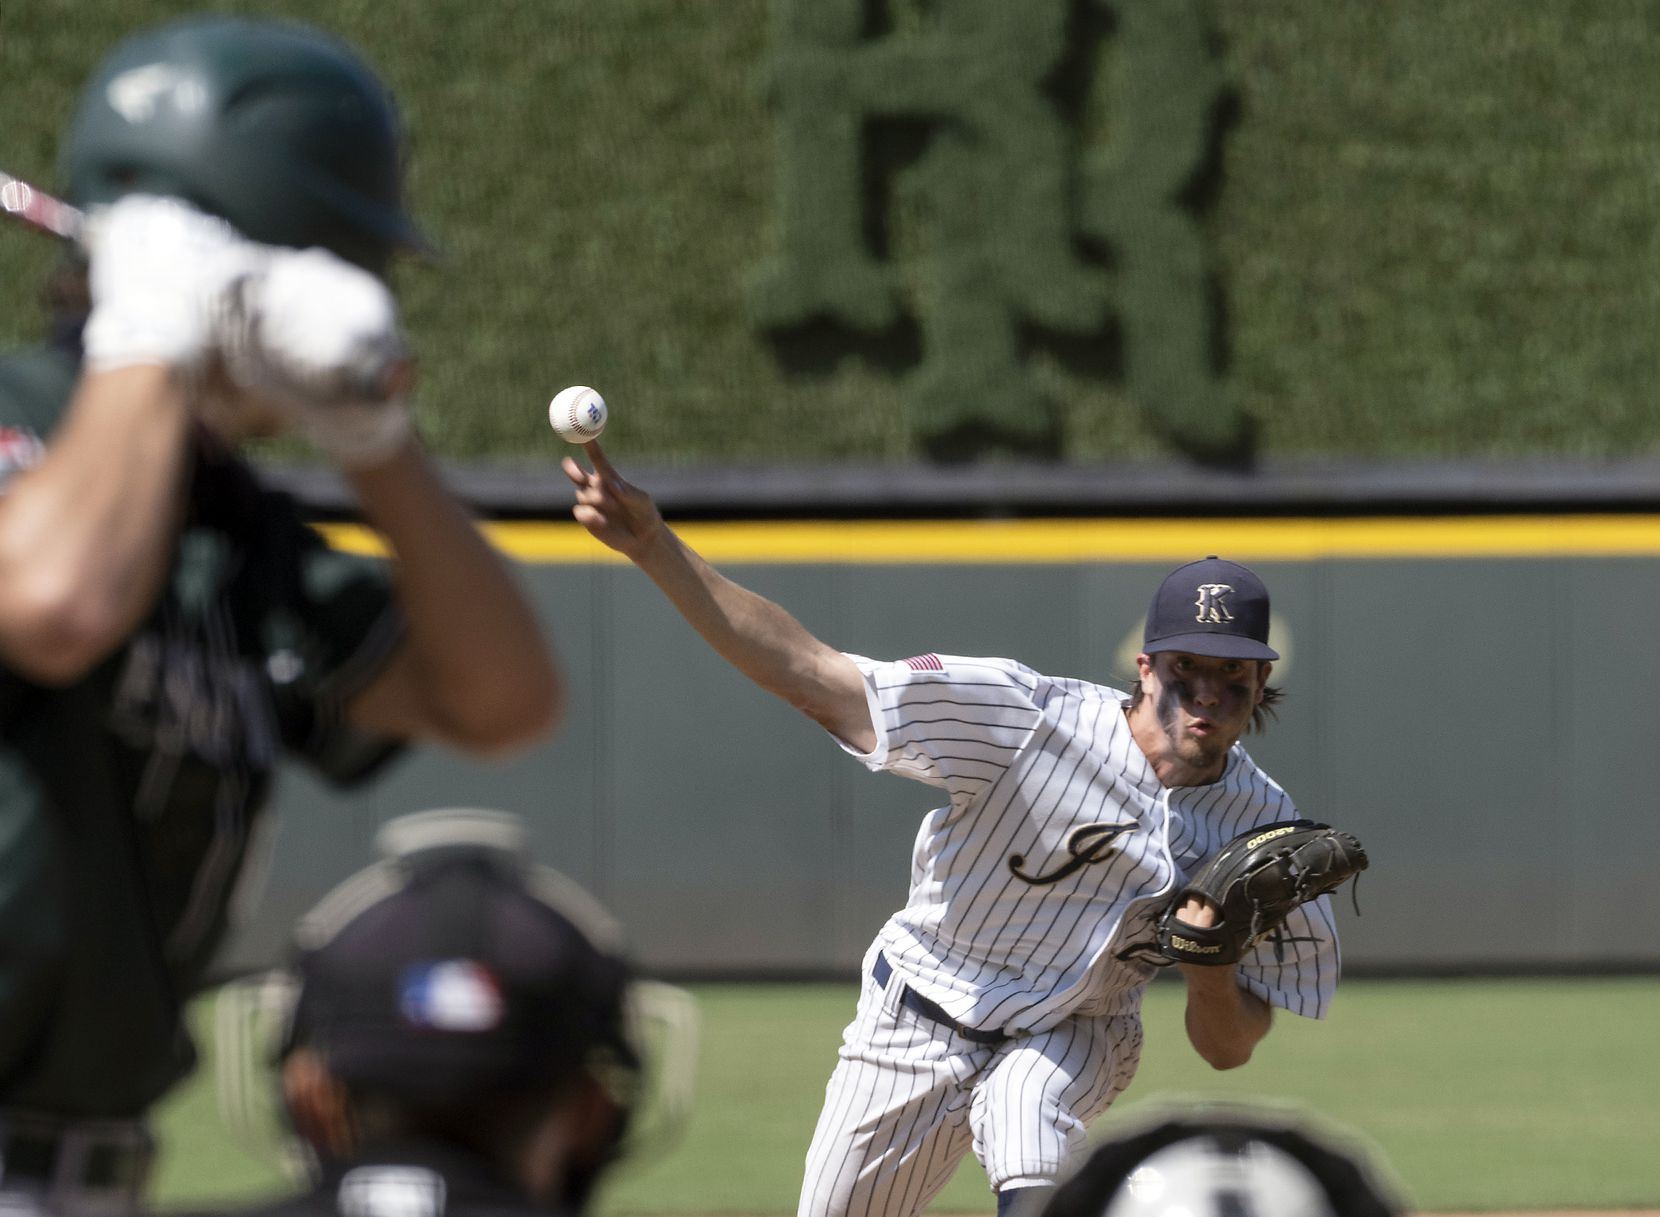 Keller Eric Hammond, (27), pitches against Houston Strake Jesuit Gabe Gruenewald, (8), during the first inning of the 2021 UIL 6A state baseball semifinals held, Friday, June 11, 2021, in Round Rock, Texas. Keller defeated Strake Jesuit 7-1.   (Rodolfo Gonzalez/Special Contributor)